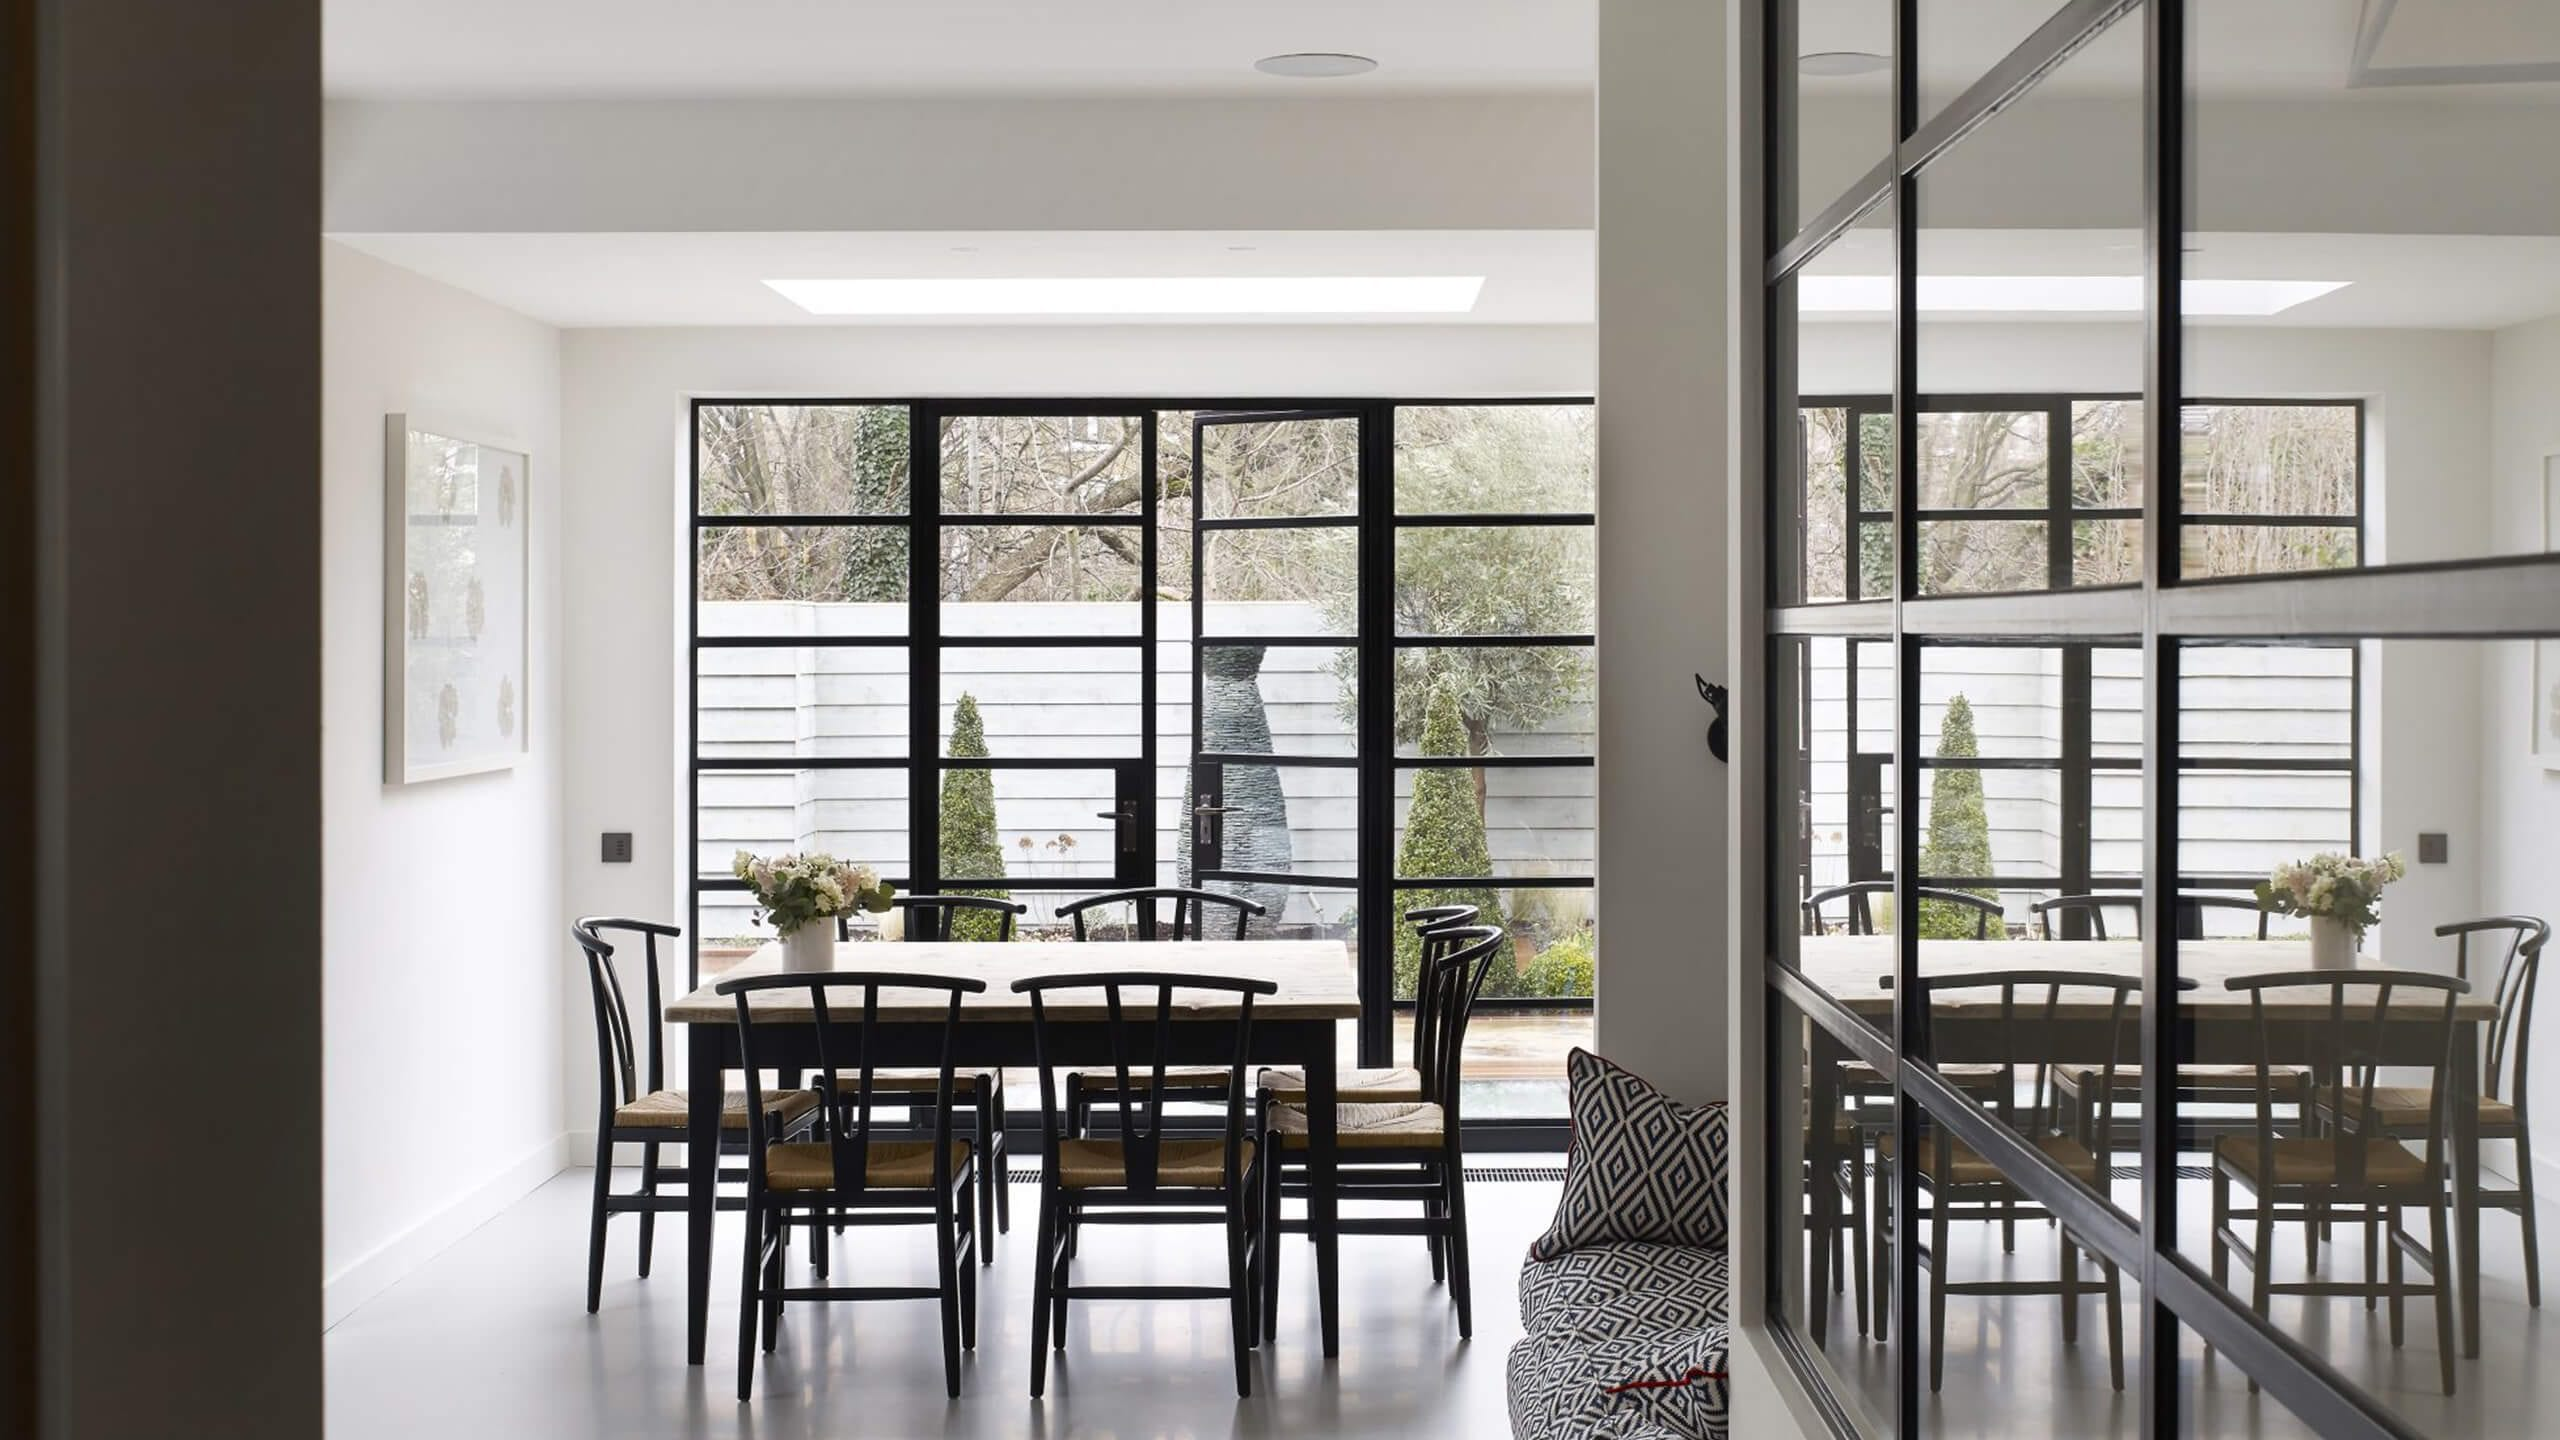 Crittall Introducing Innervision® Image